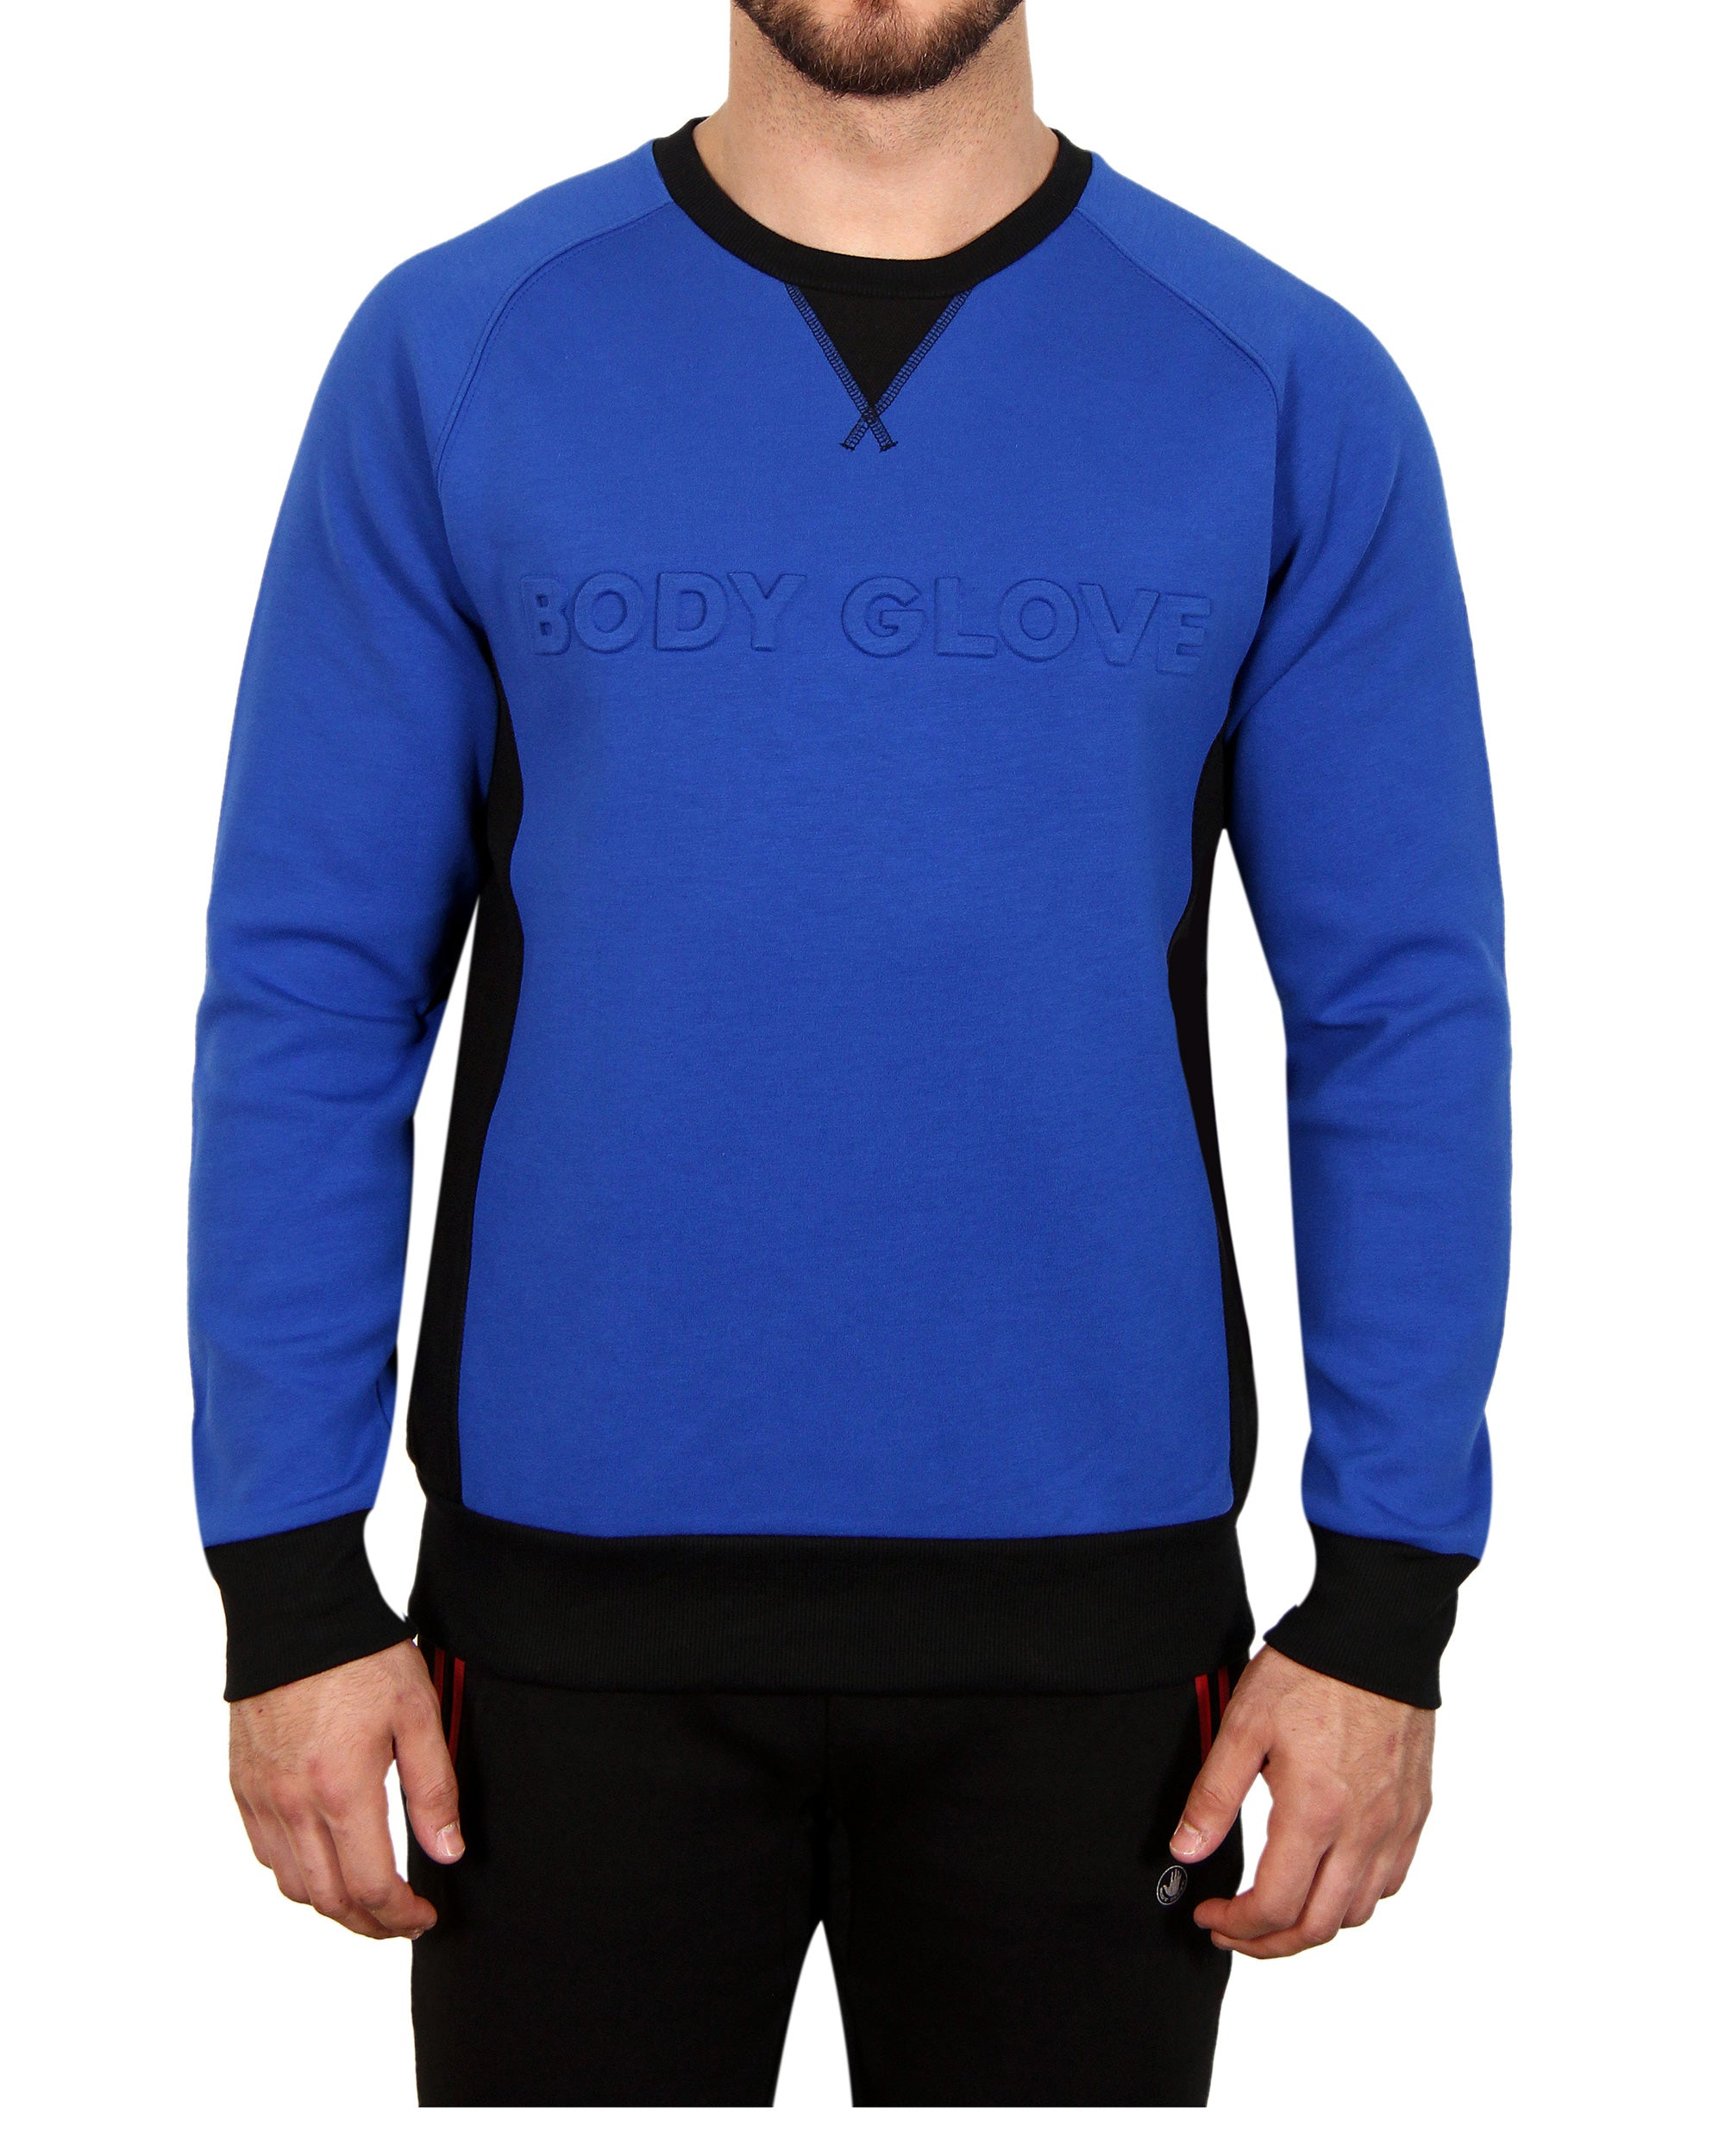 Men's Signature Crew Fleece - Blue